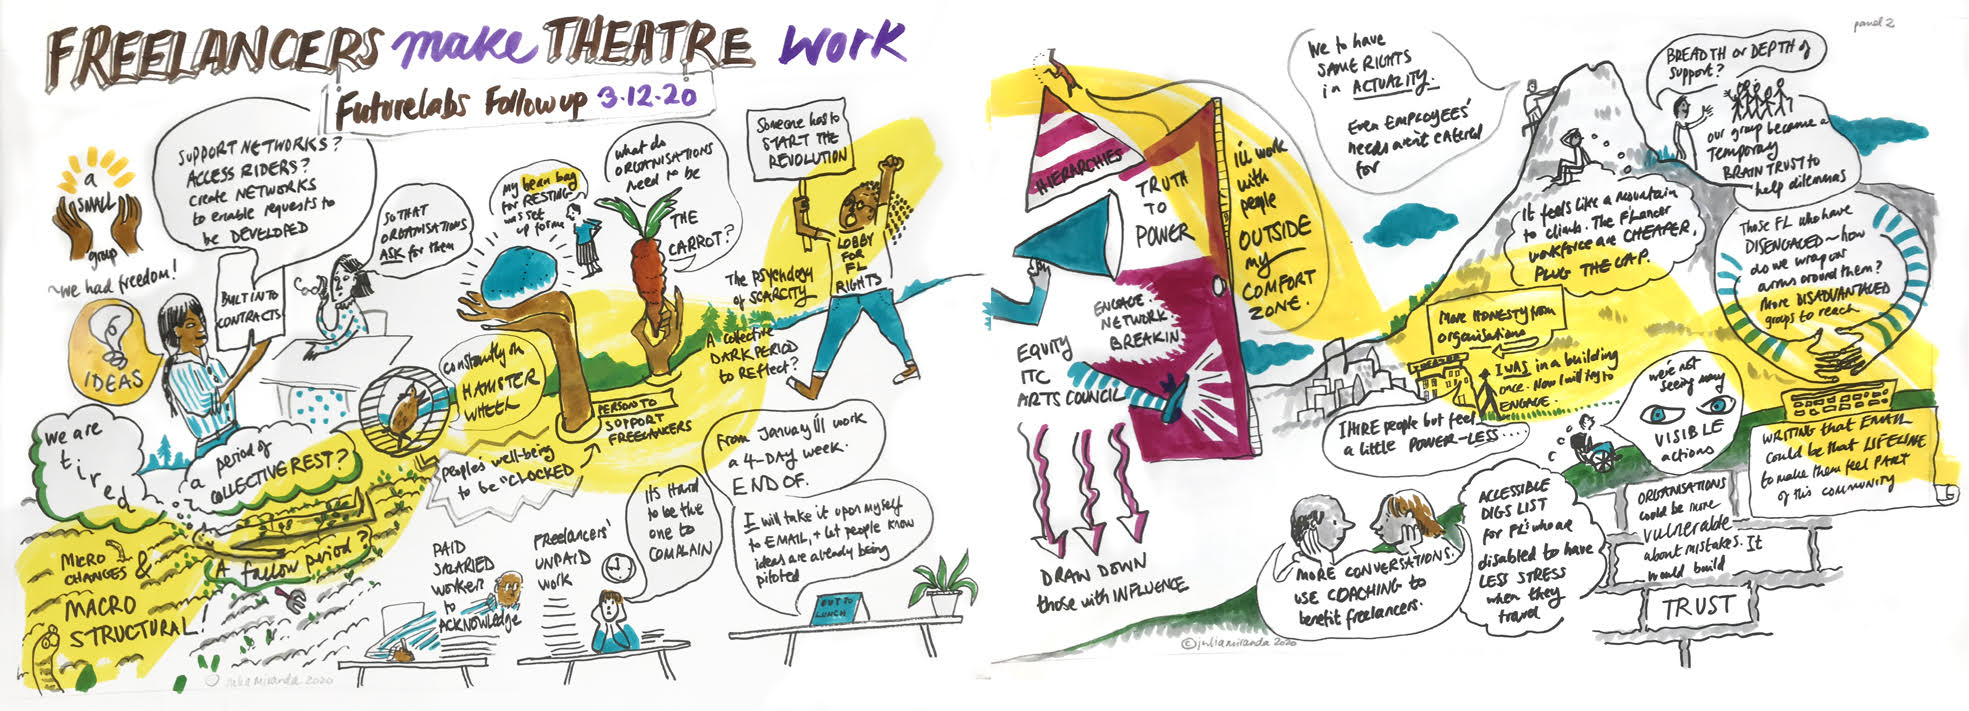 Graphic notes from Future Labs panel 3